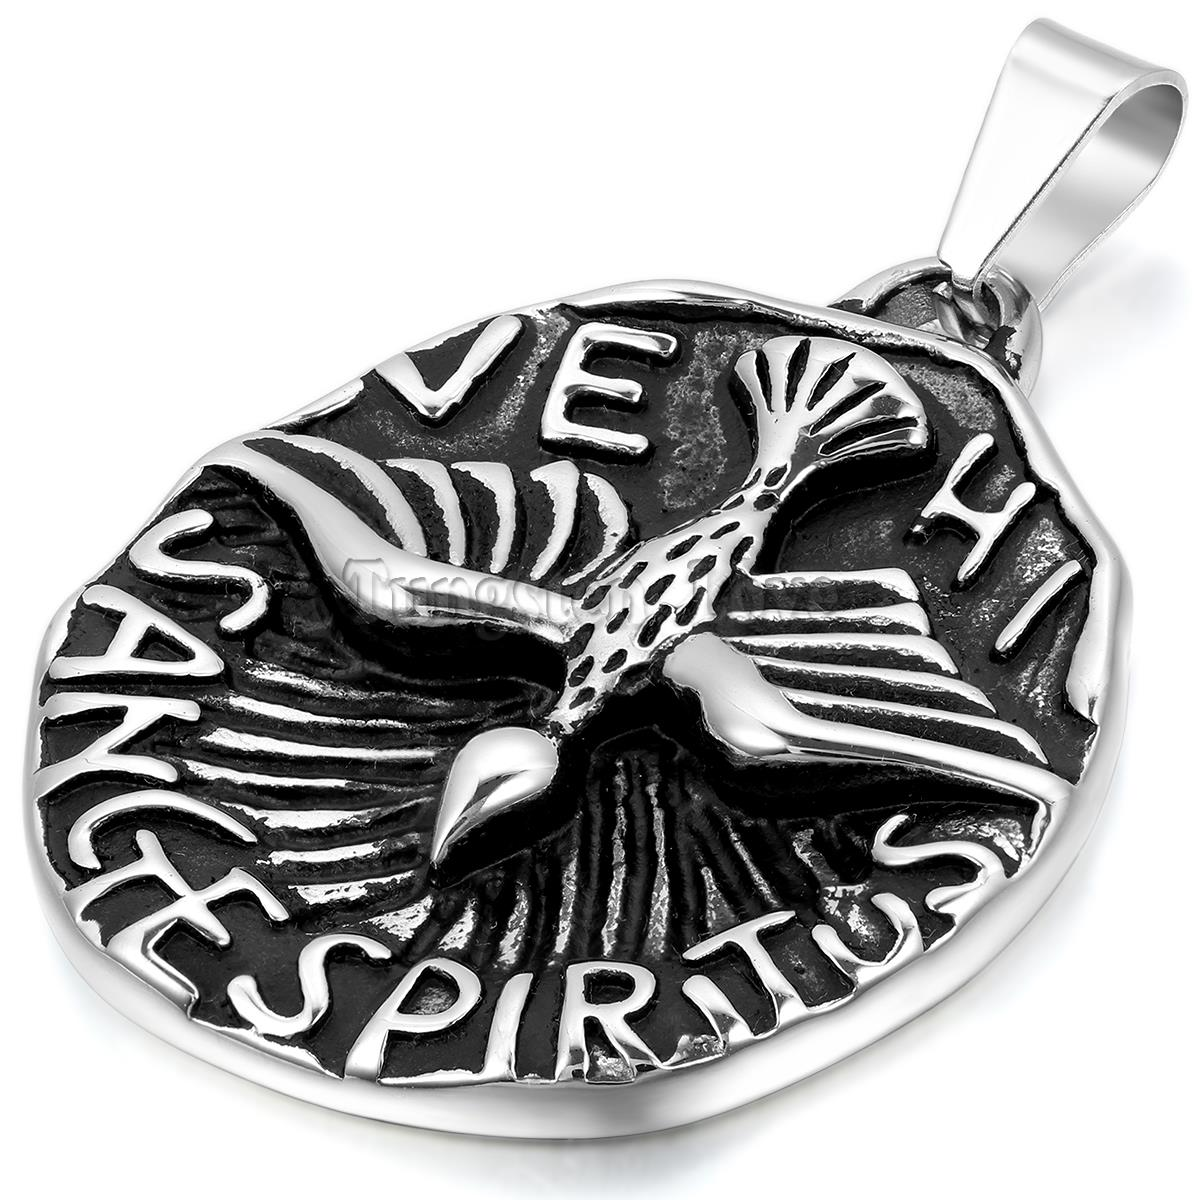 New Vintage Stainless Steel Necklaces Men Unique Love Bird Tag Pendant Necklaces Black Silver Fashion collar collier(China (Mainland))